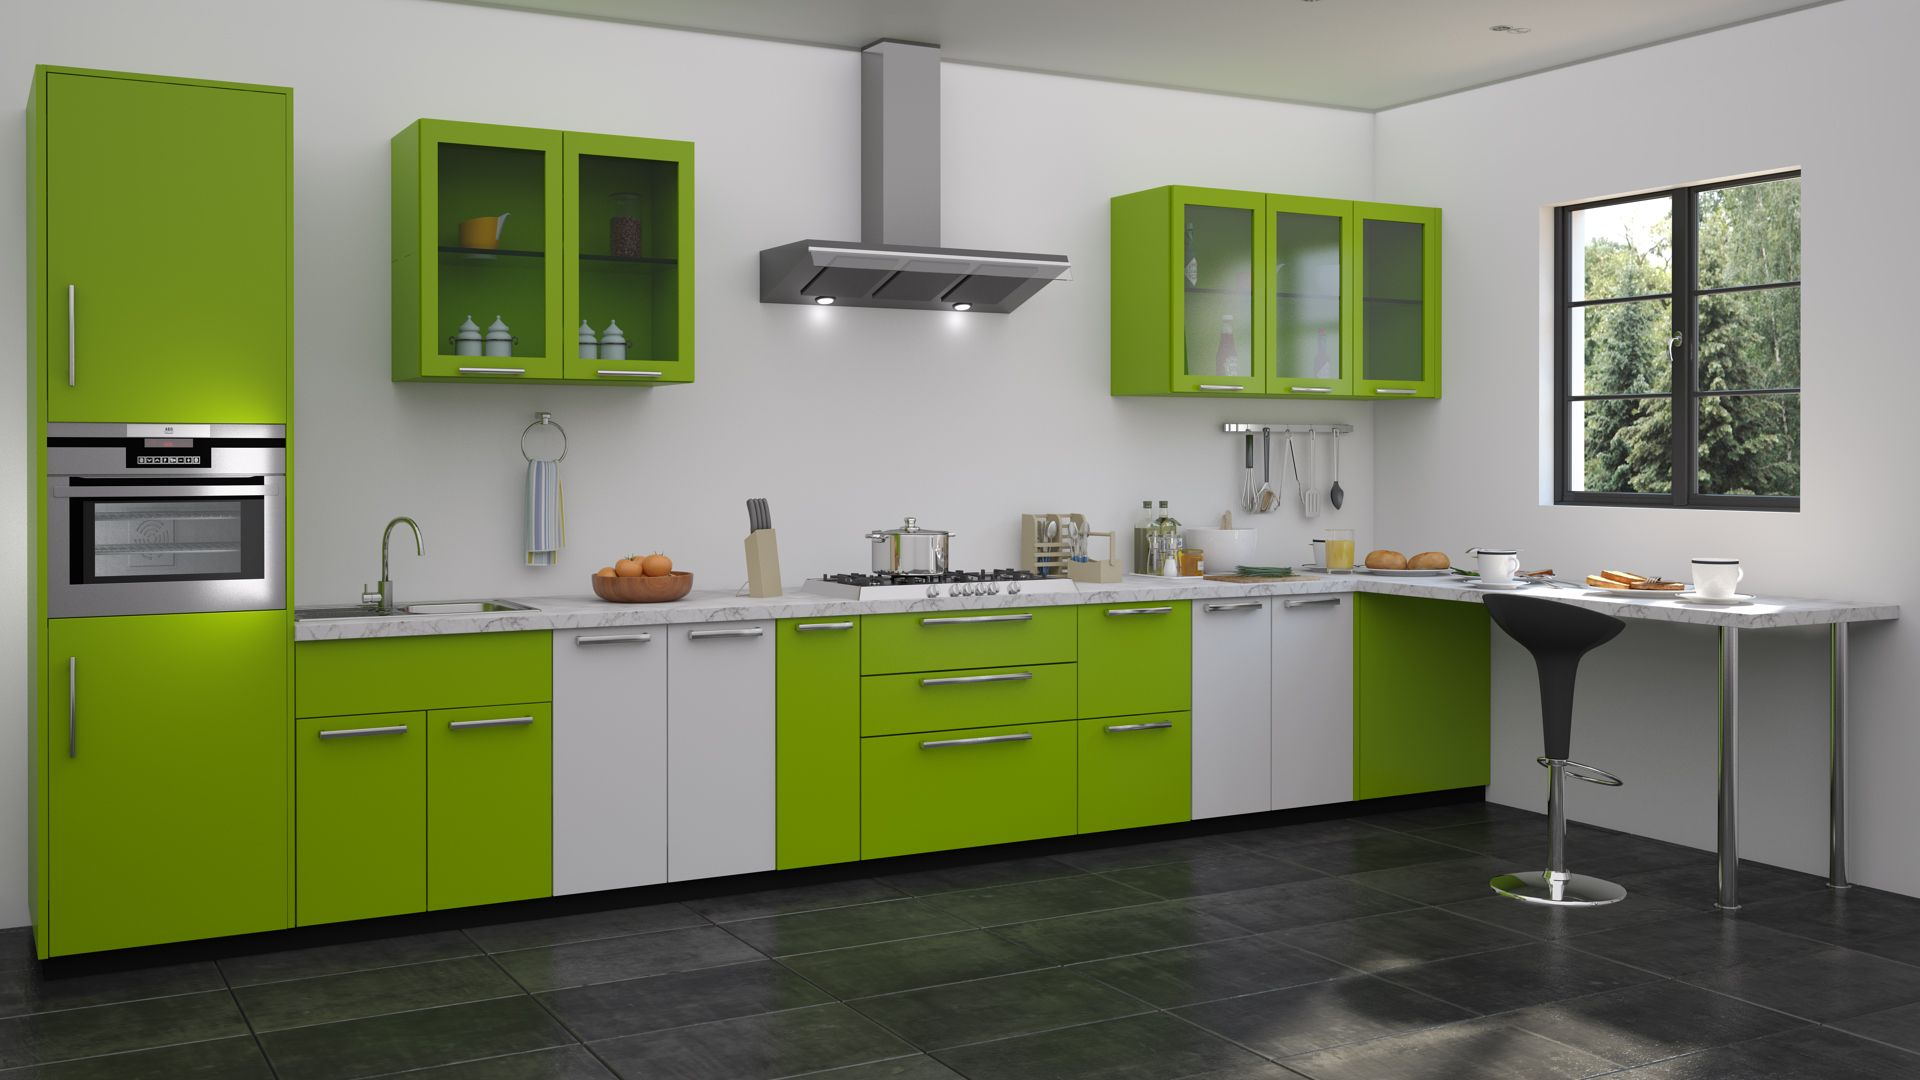 Green Modular Kitchen Designs Straight Kitchen Designs Pinterest Kitchen Design Kitchen